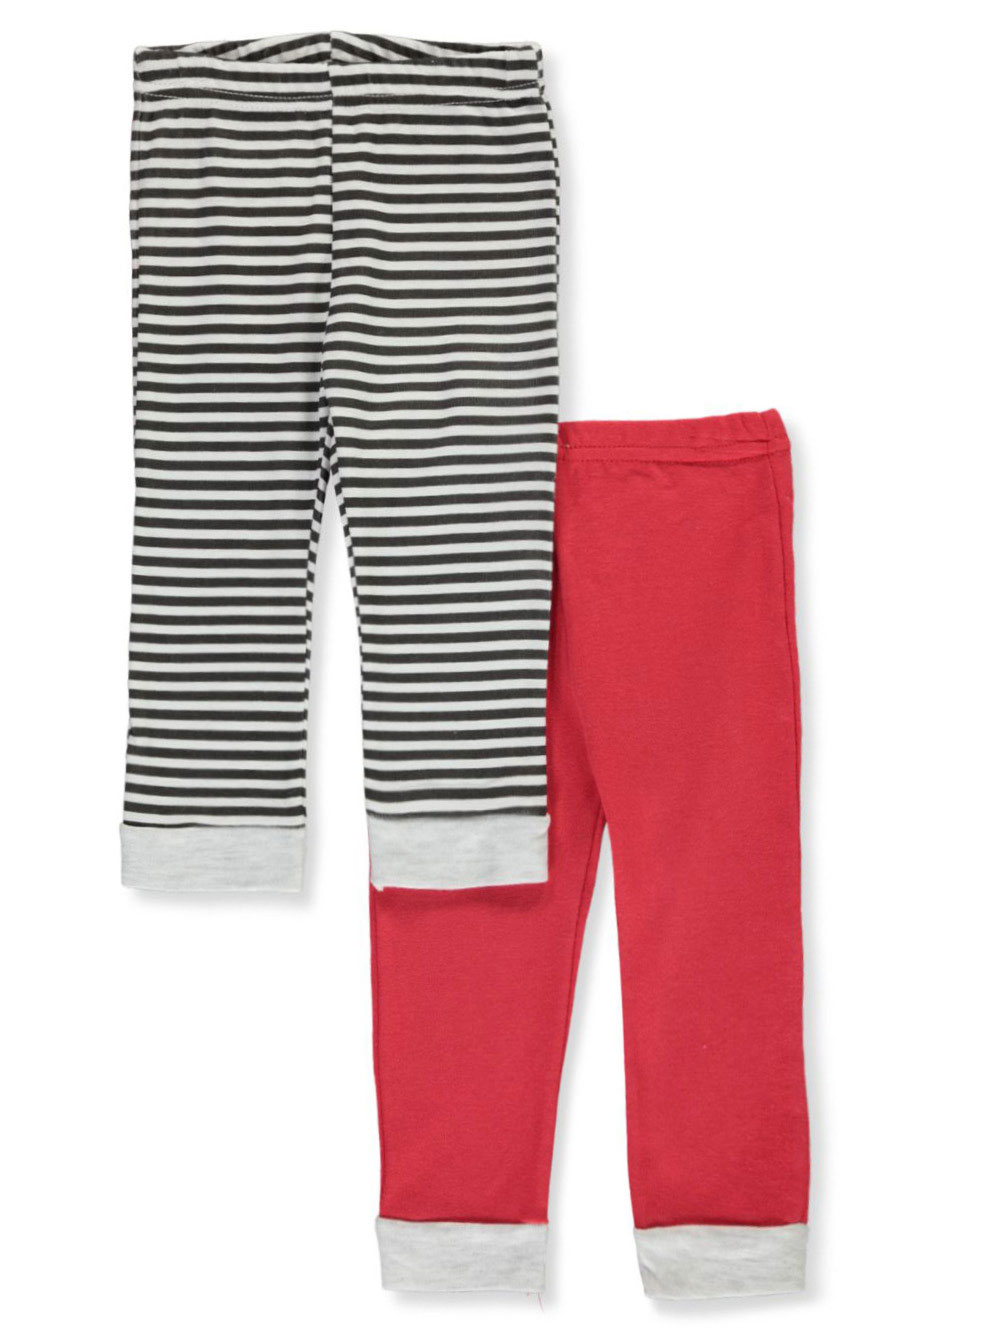 Boys White and Multicolor Pants